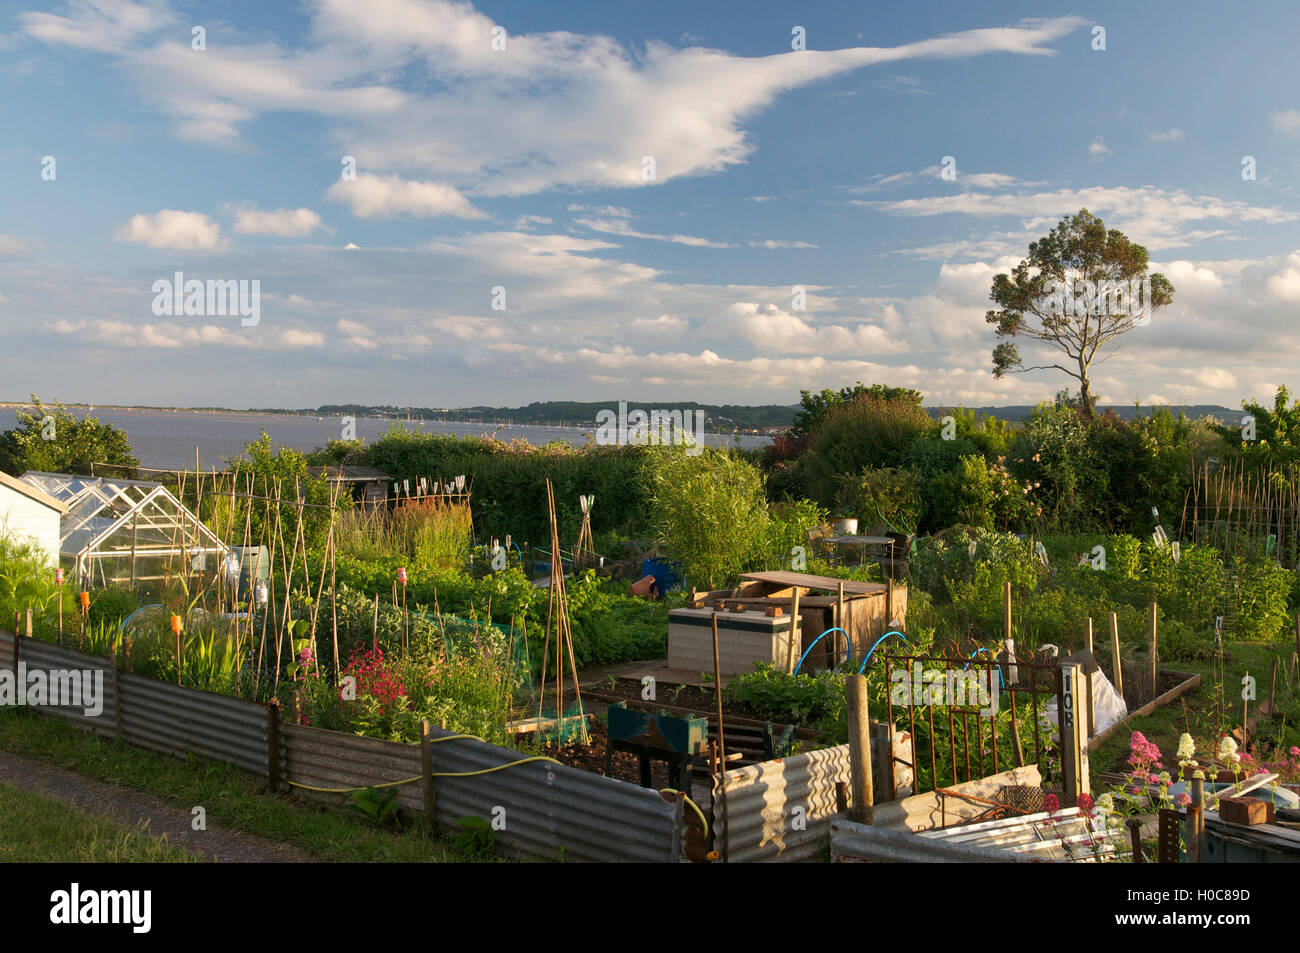 Allotments , Devon, UK - Stock Image